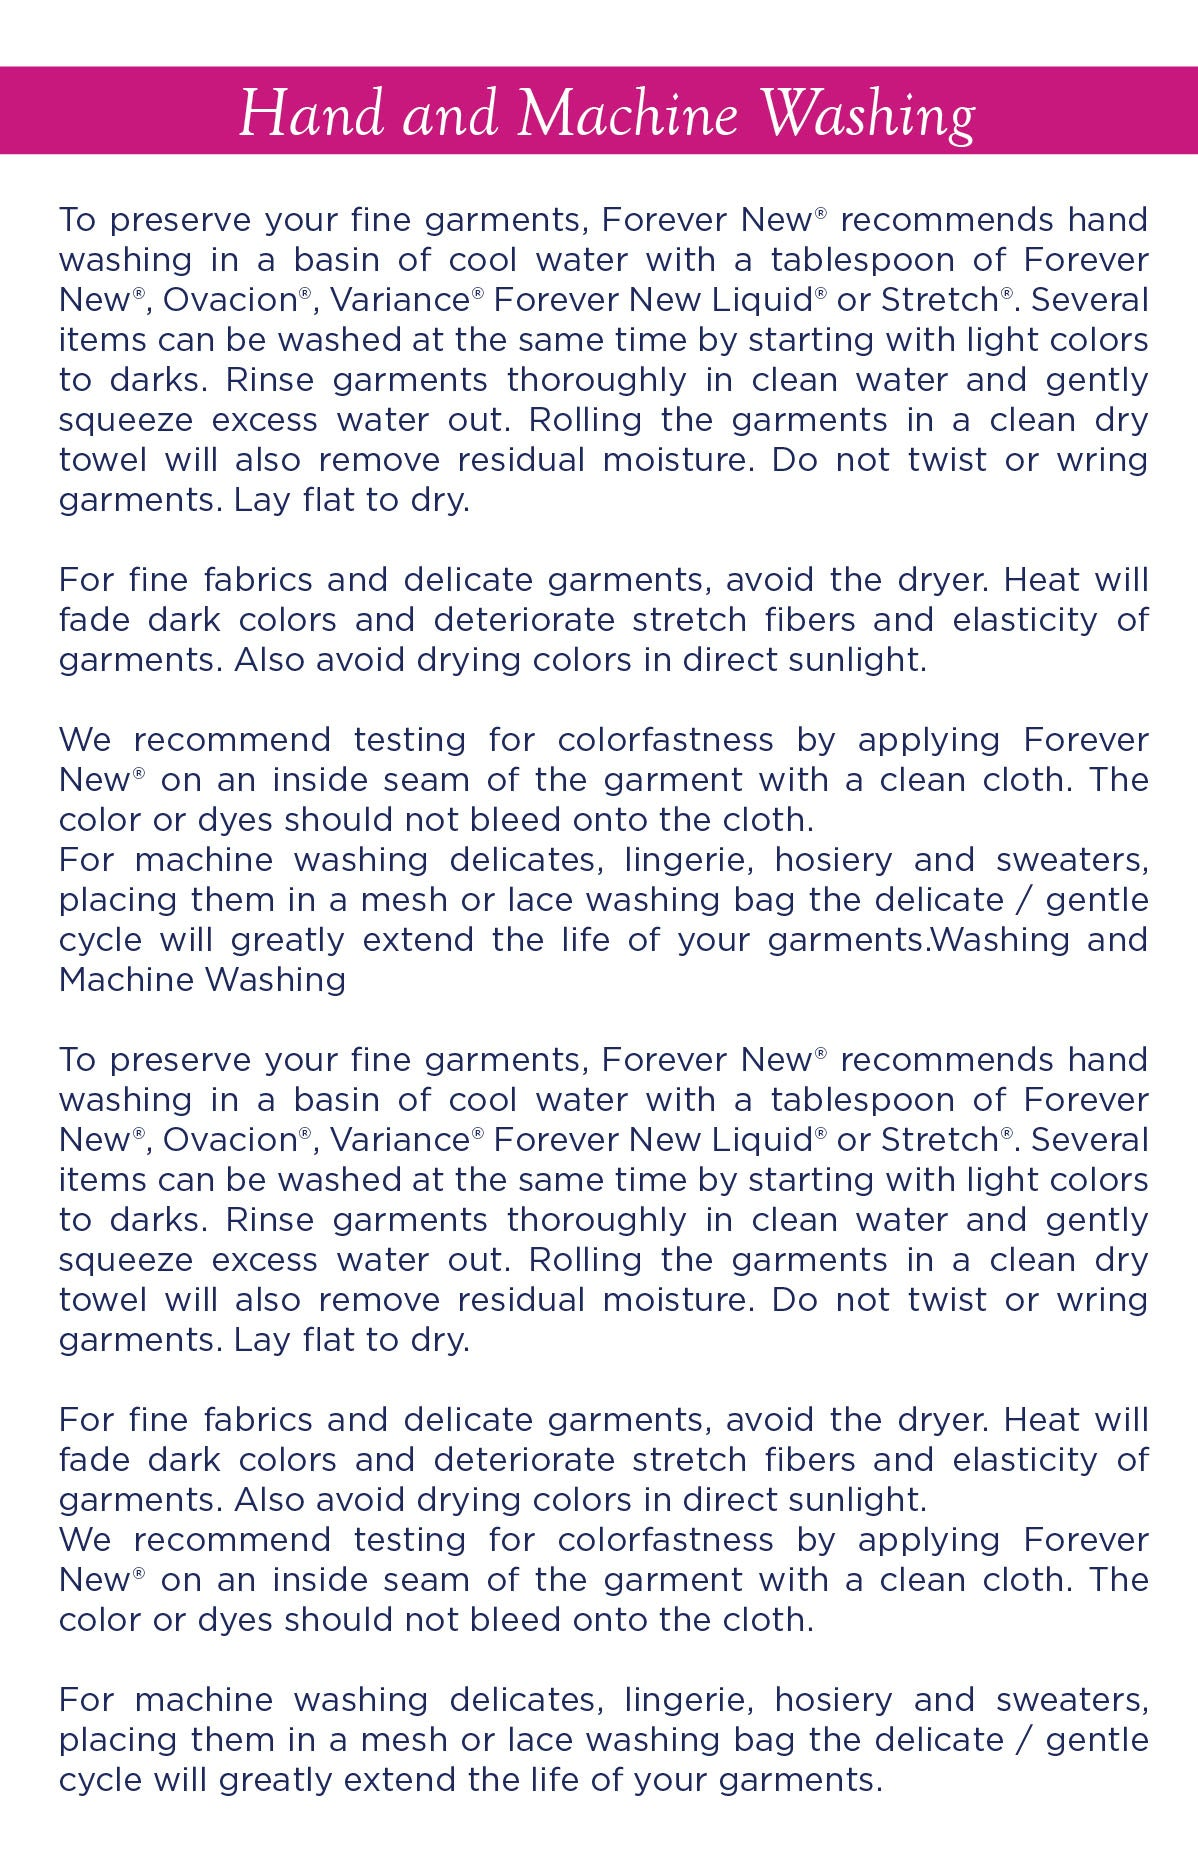 more tips by forever new laundry care detergent